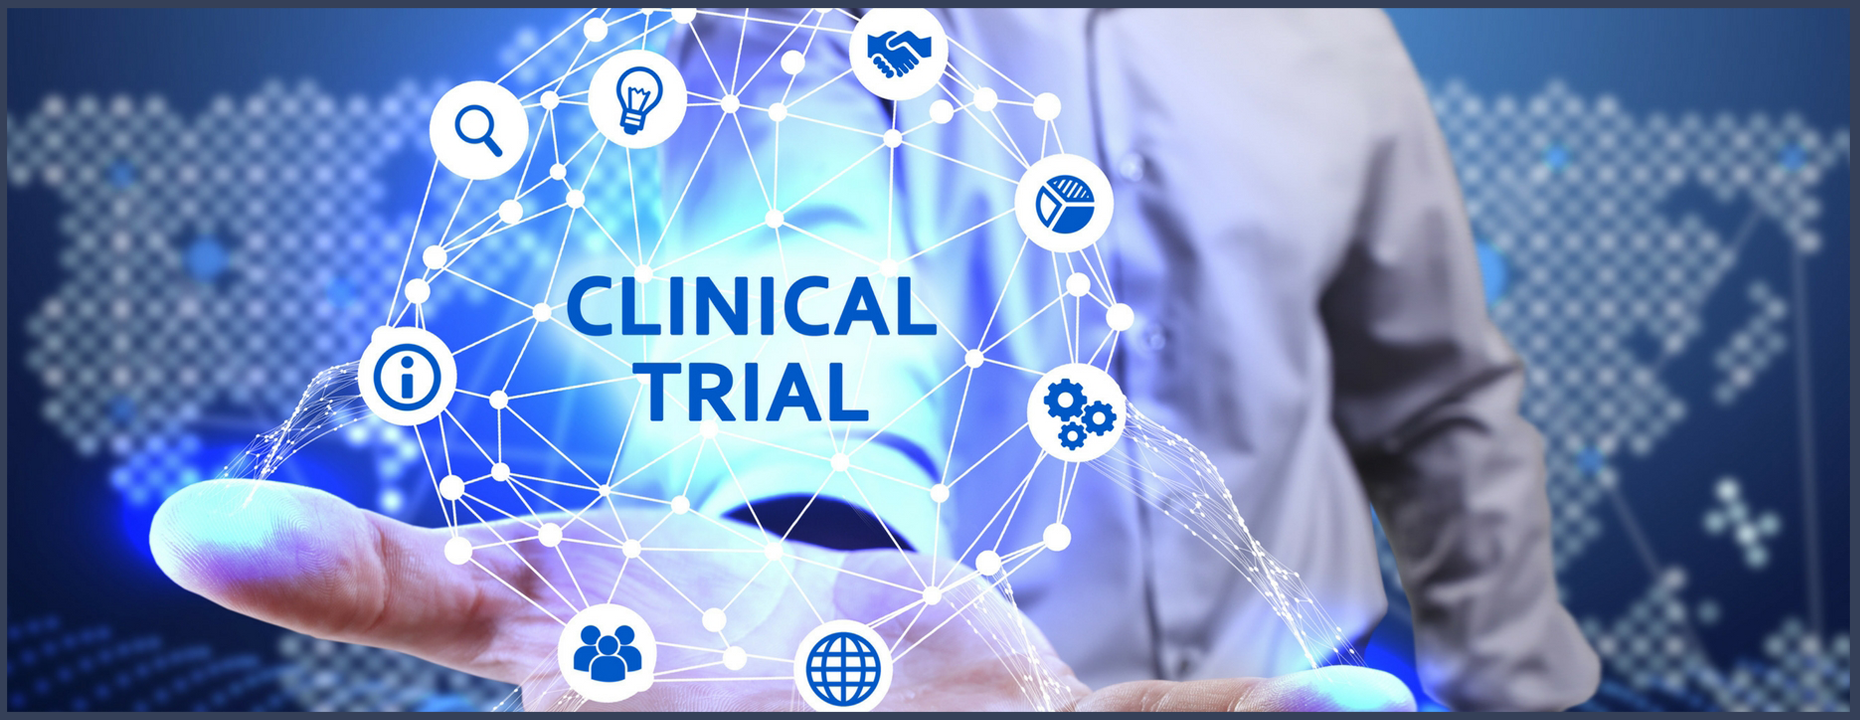 Current Clinical Trial 4